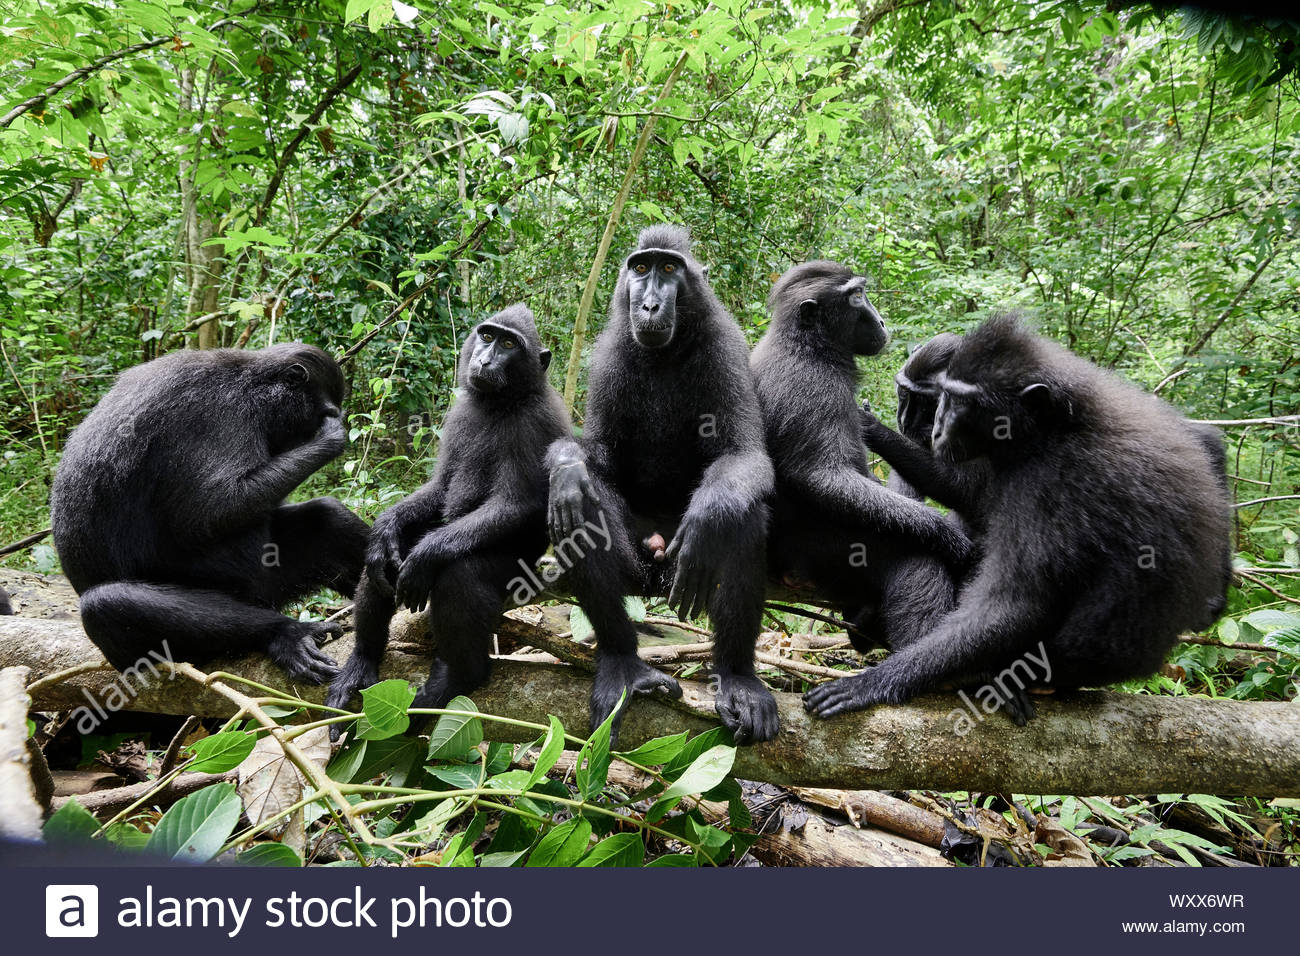 Celebes crested macaque (Macaca nigra), groupe of macaques nearby,Tangkoko National Park, Sulawesi, Indonesia Stock Photo